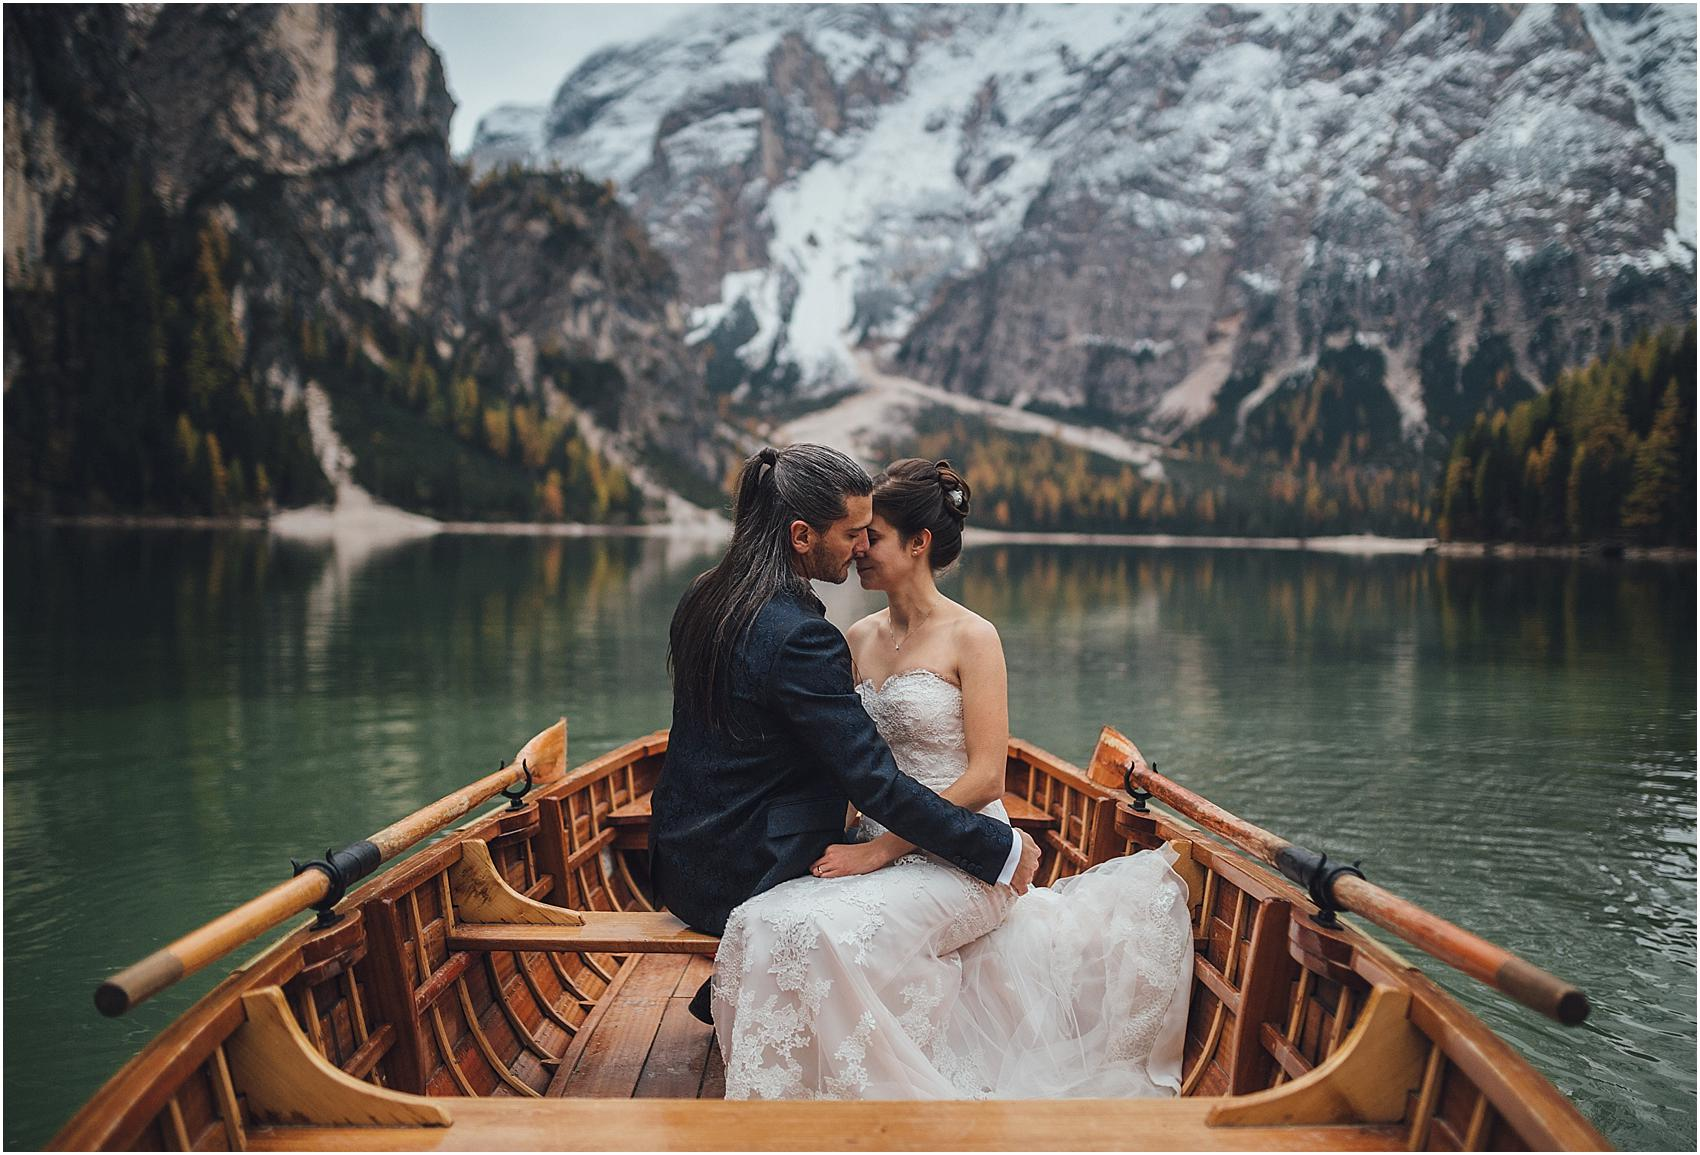 Destination Wedding - Lake Braies - Italy_2034